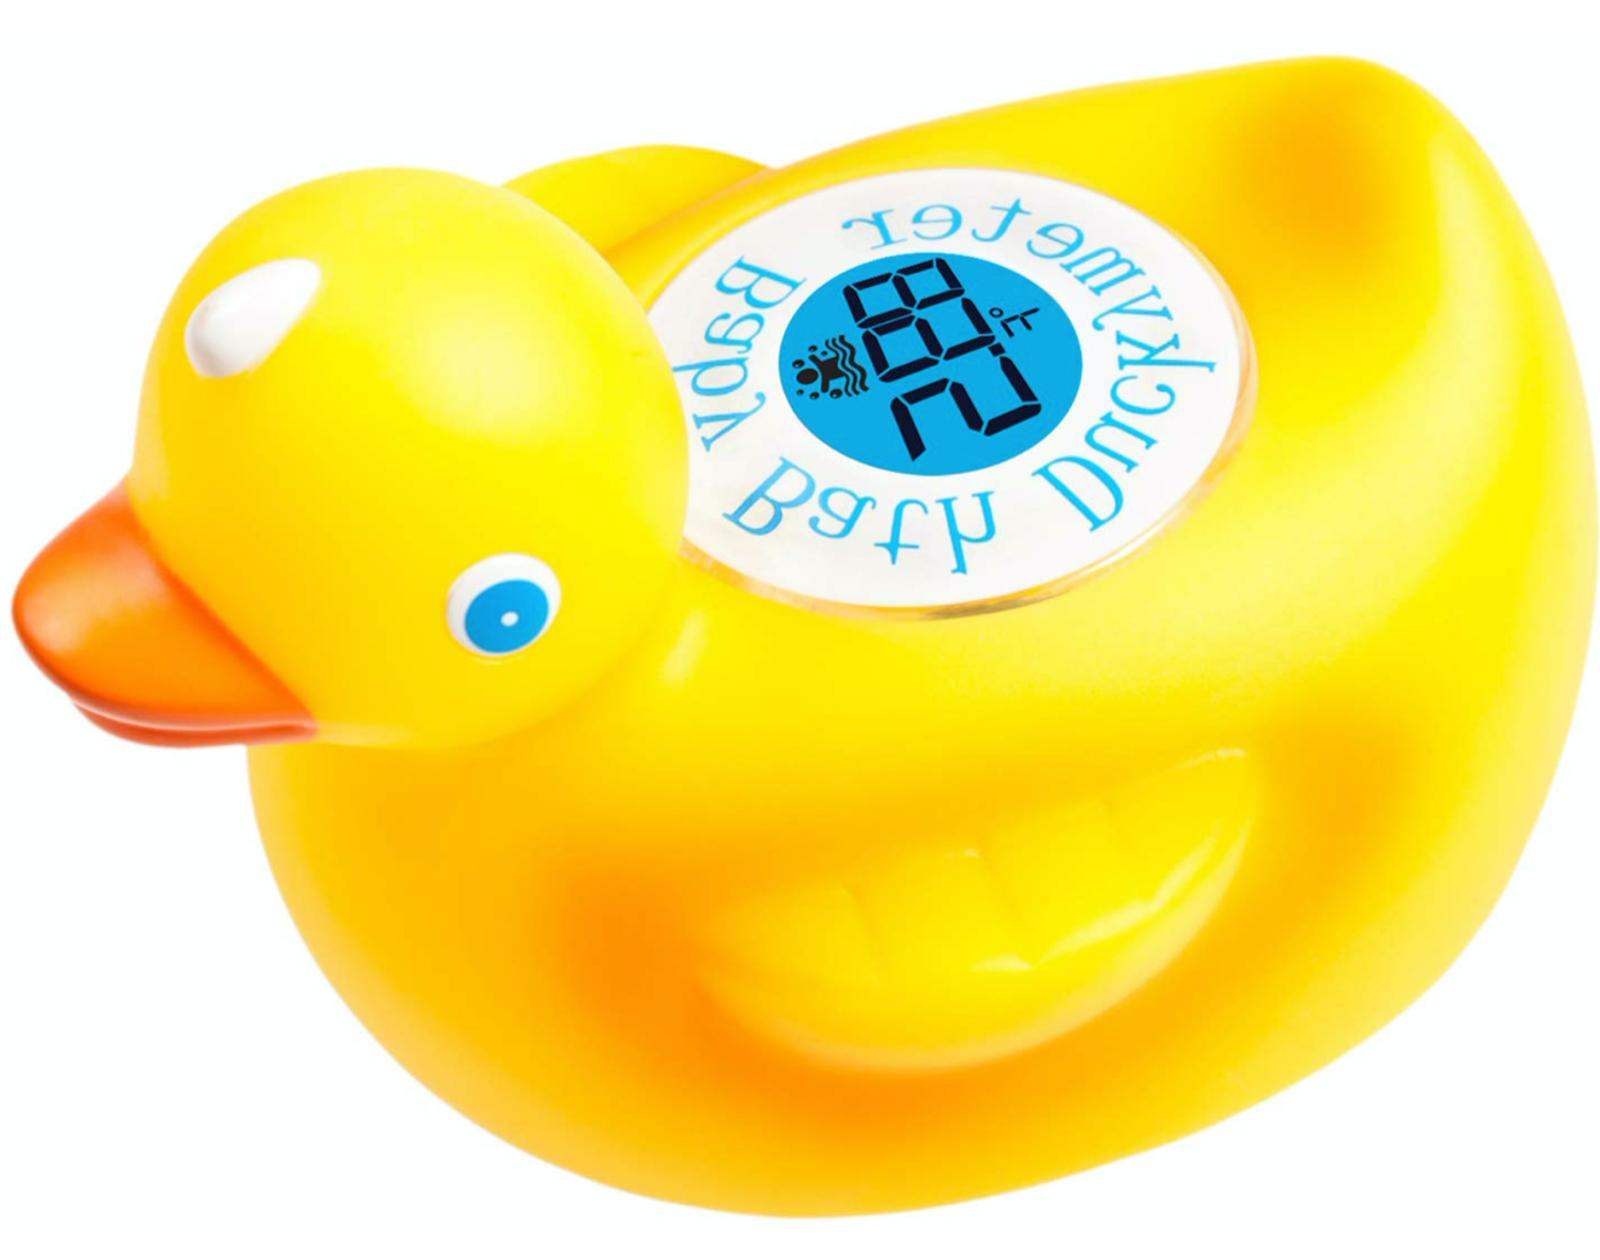 Duckymeter, the Baby Bath Floating Duck Toy and Bath Tub The